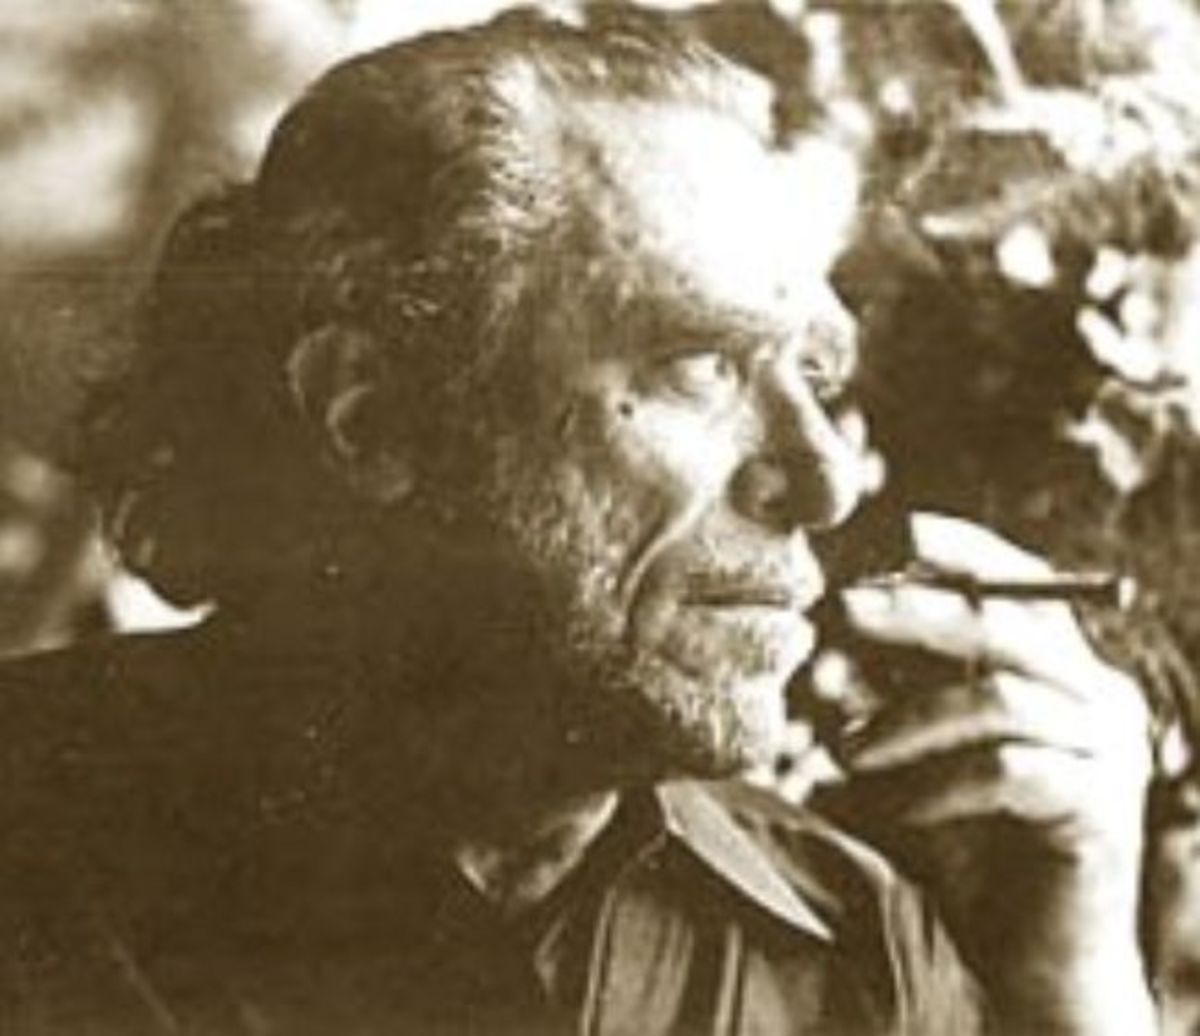 Charles Bukowski smoking Source: Wikipedia